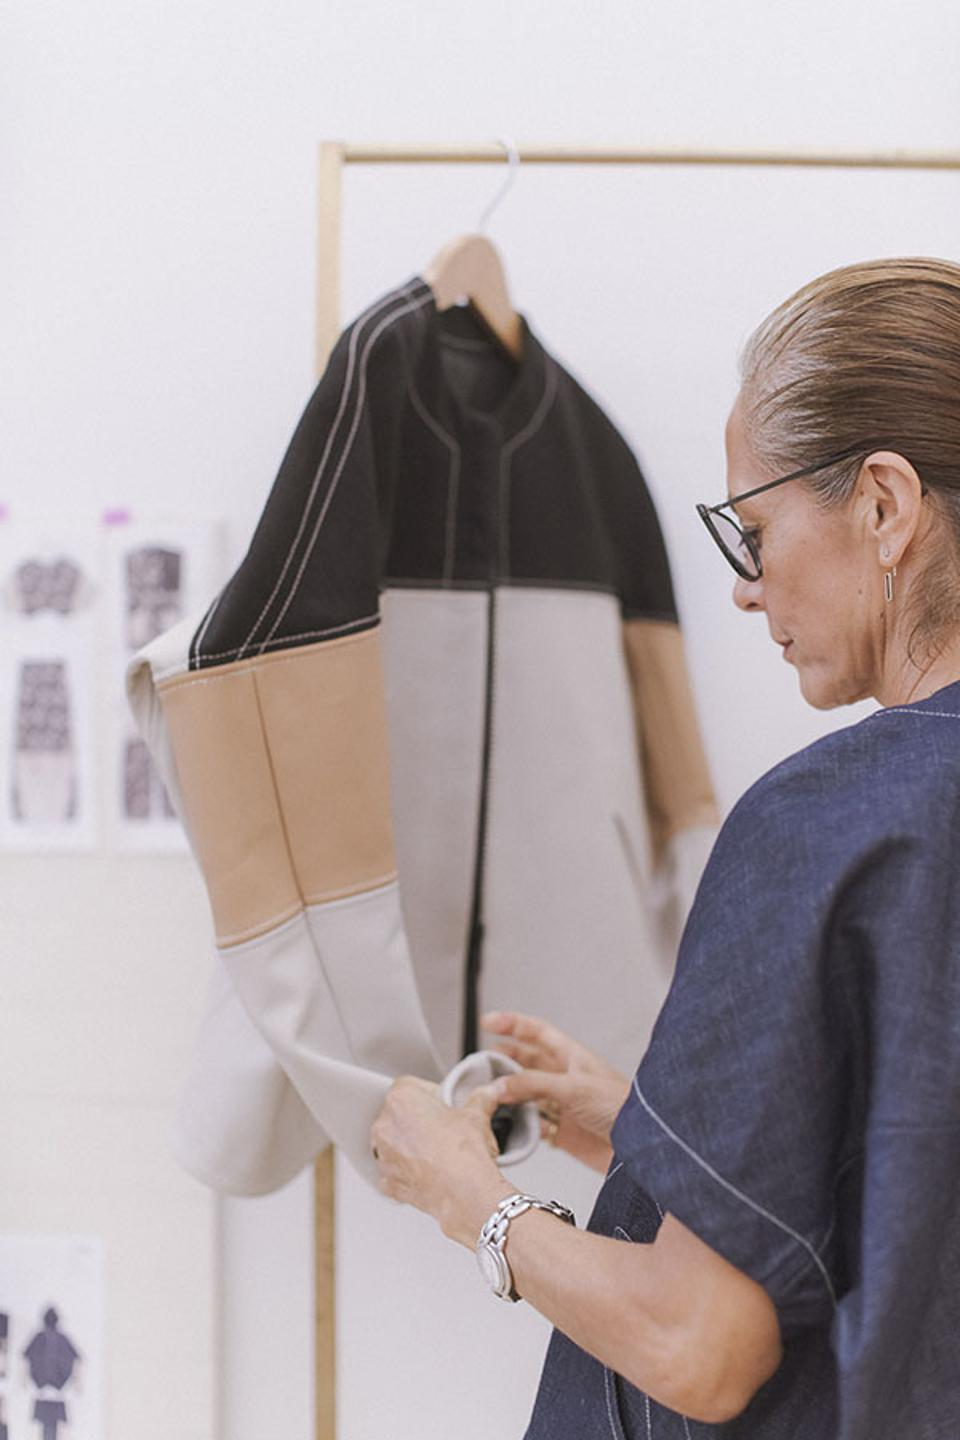 Hyundai x Zero Maria Cornejo capsule collection: Working in her Atelier using perforated leather from car seats.